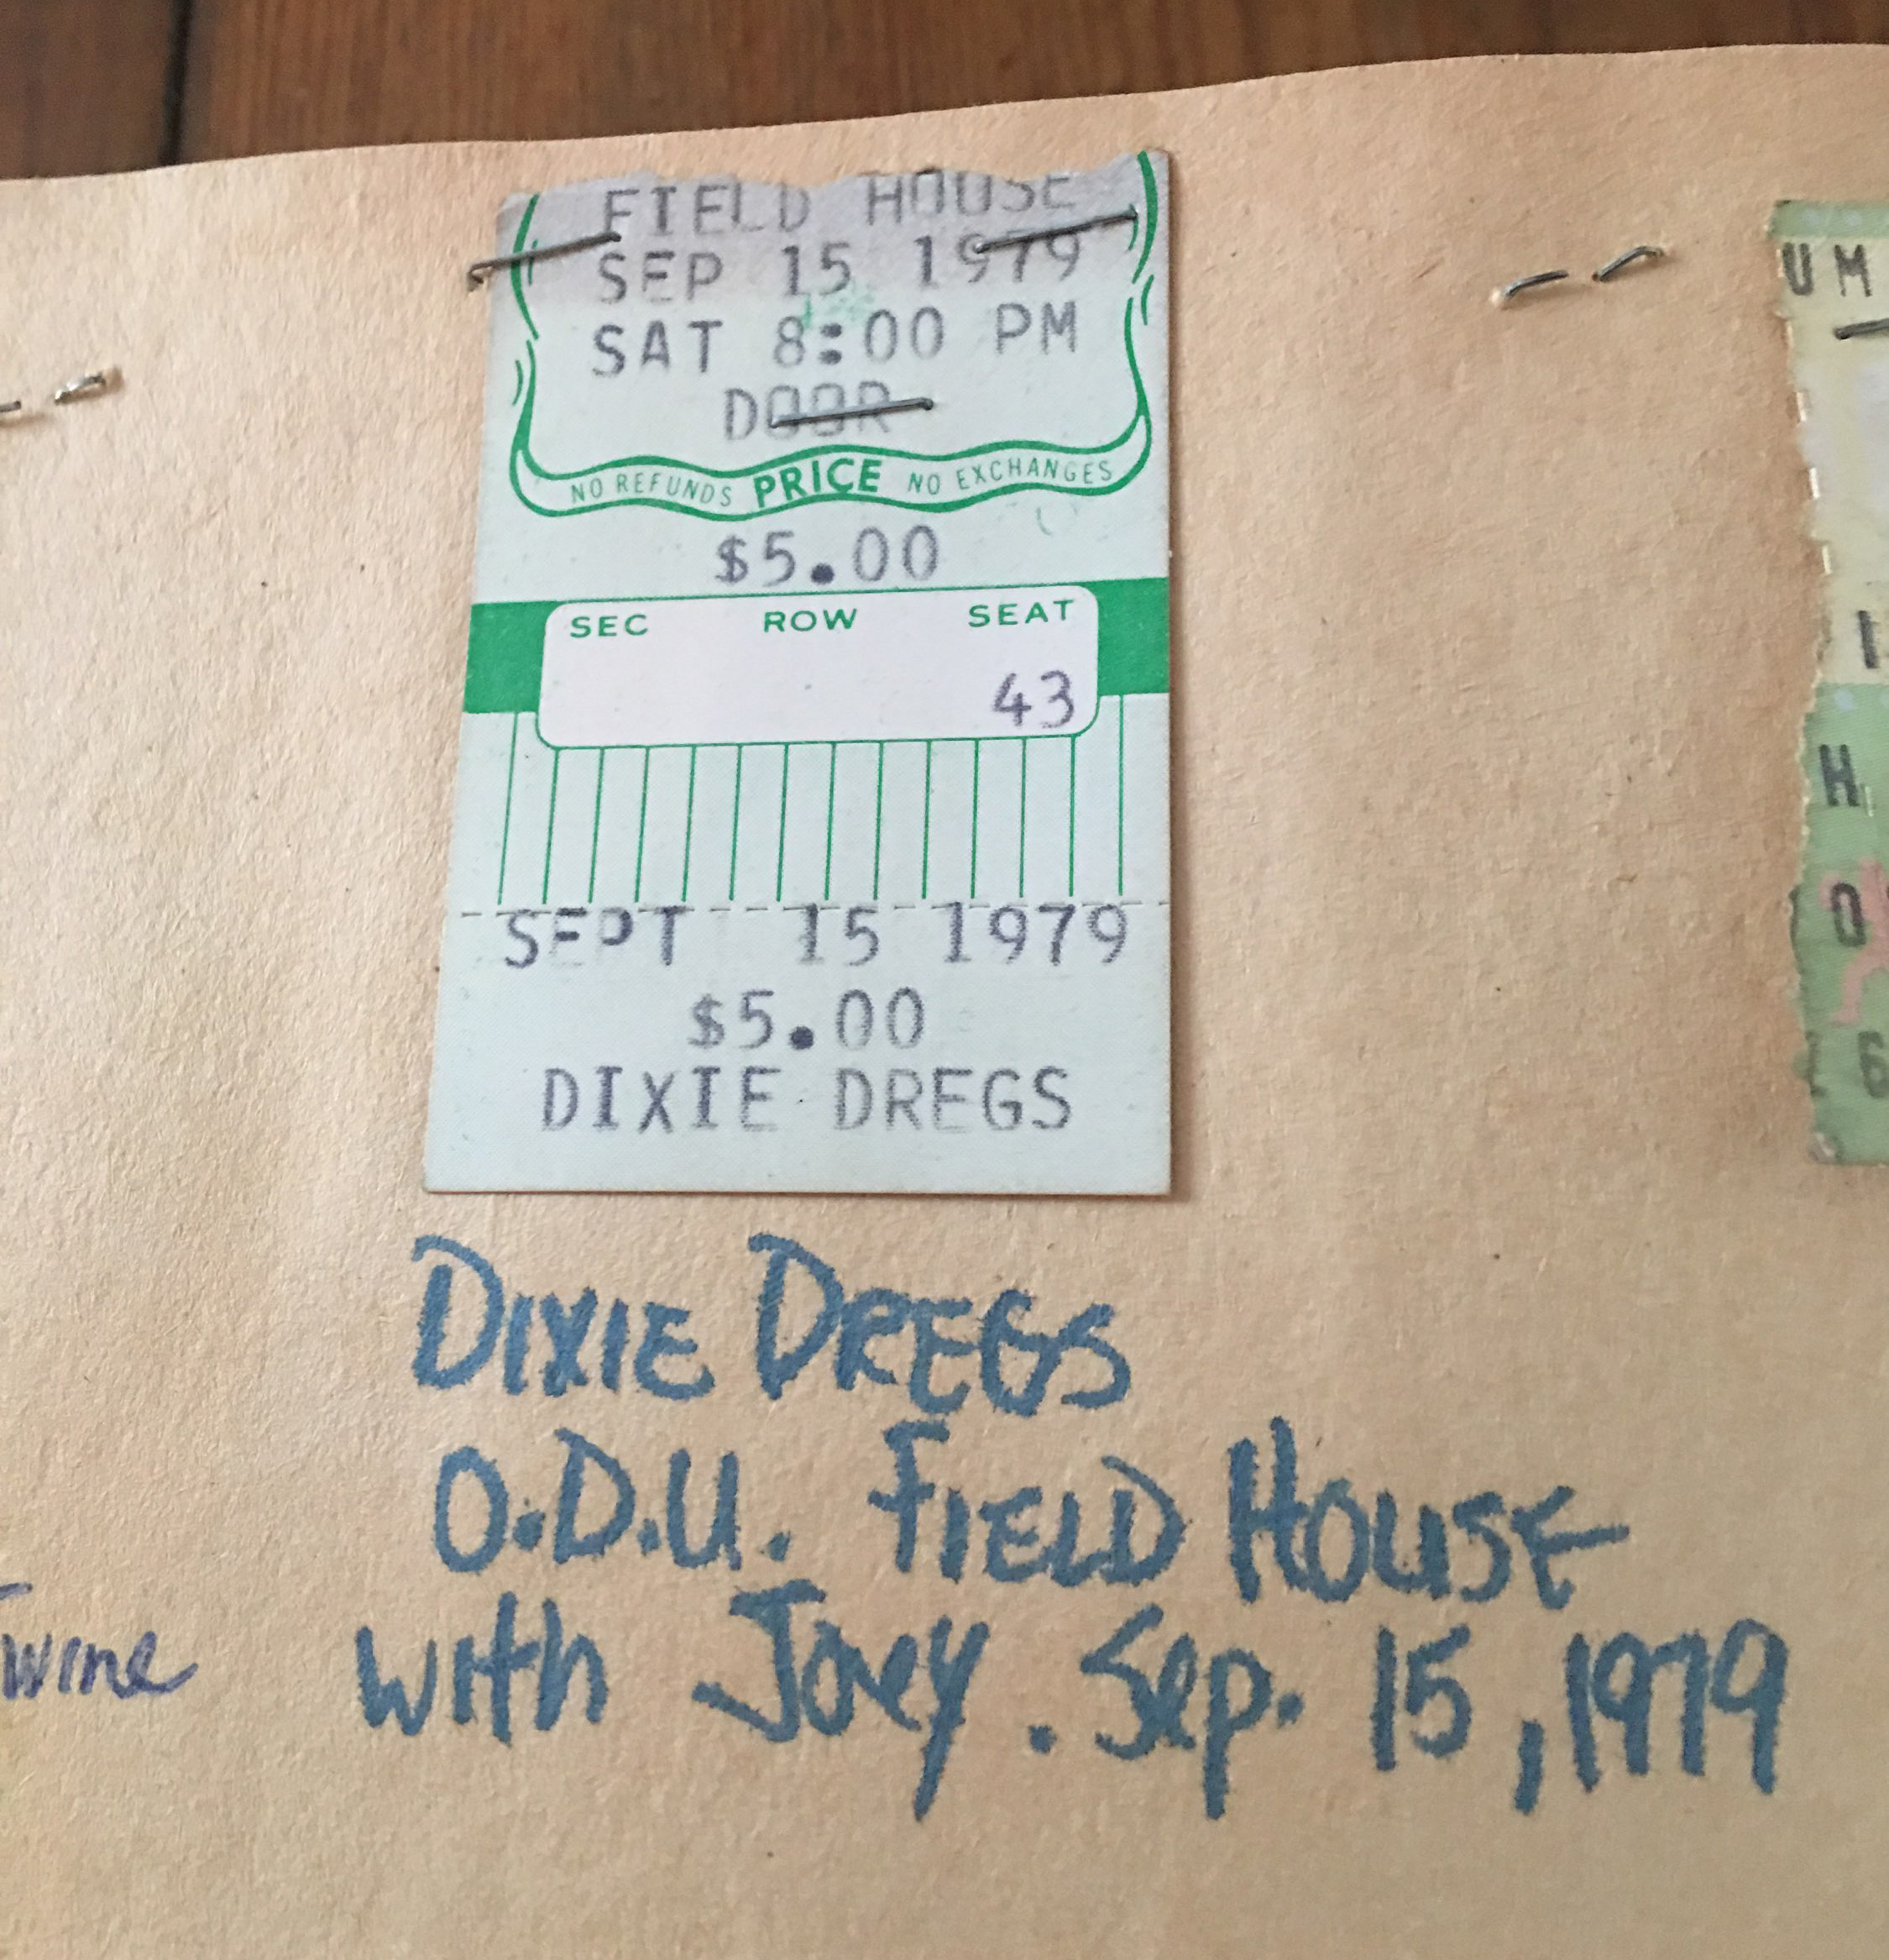 Deb's ticket to see Dixie Dregs at ODU in 1979